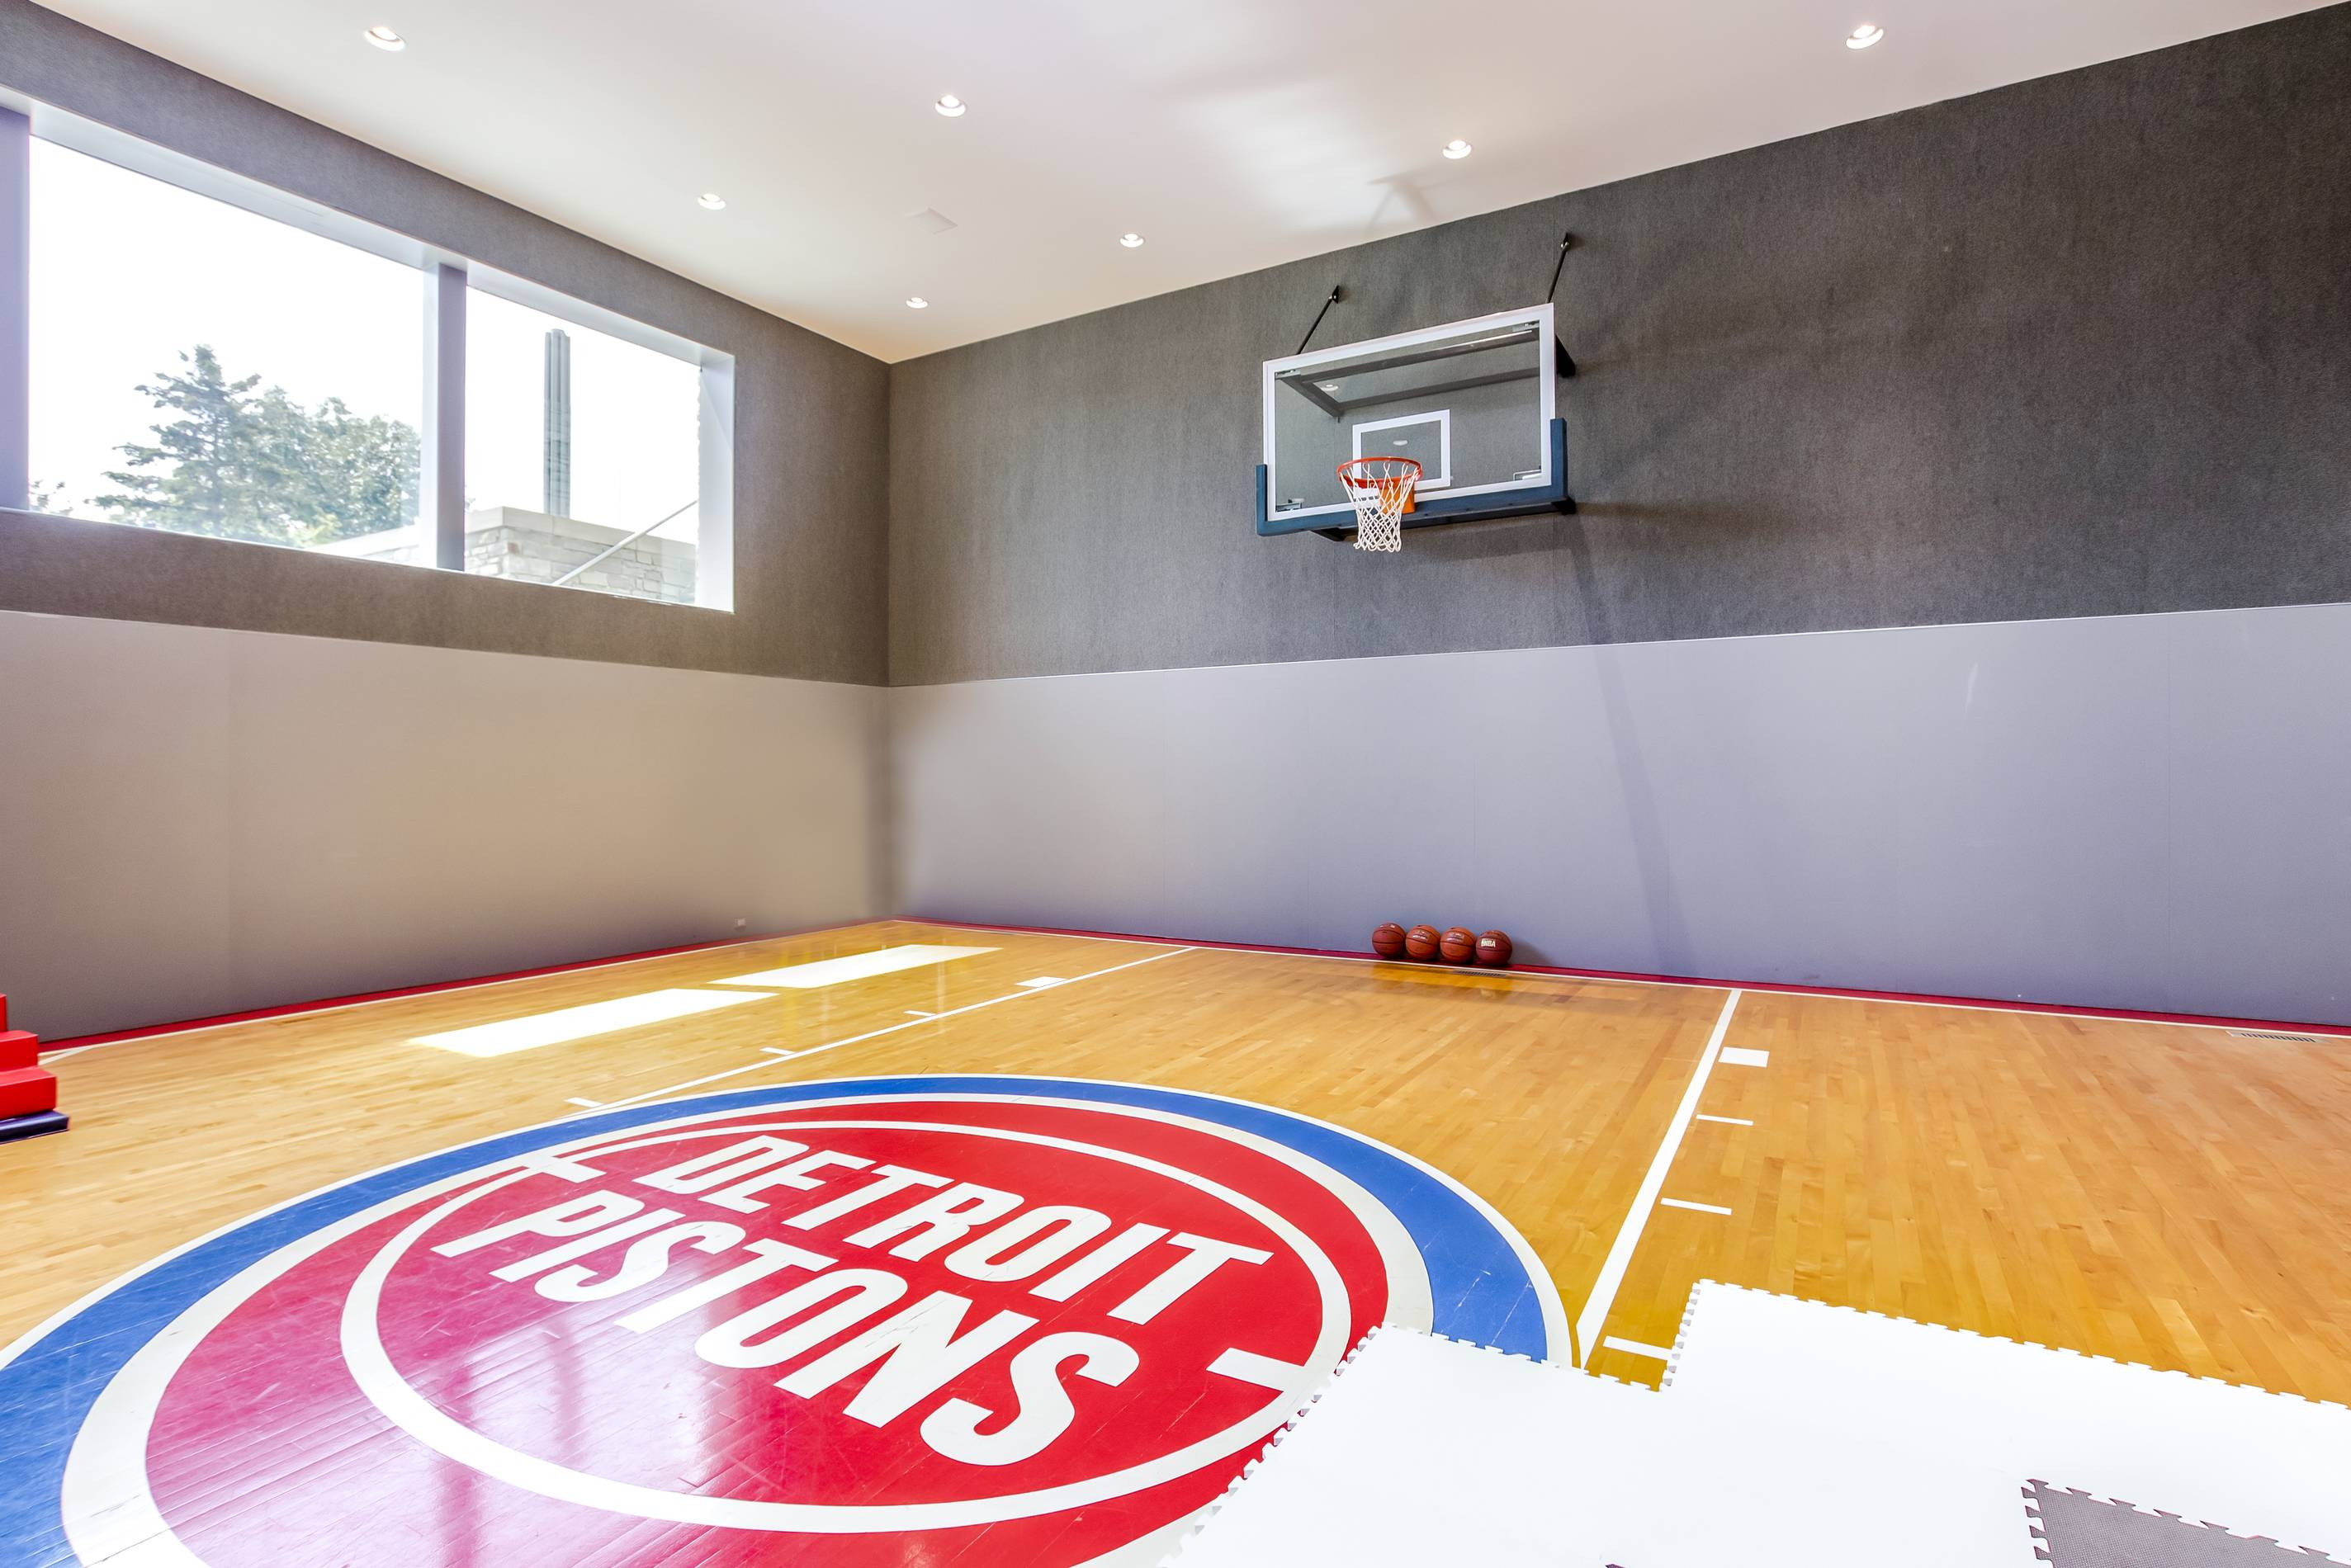 Matthew Stafford's Michigan Mansion, Pistons basketball court